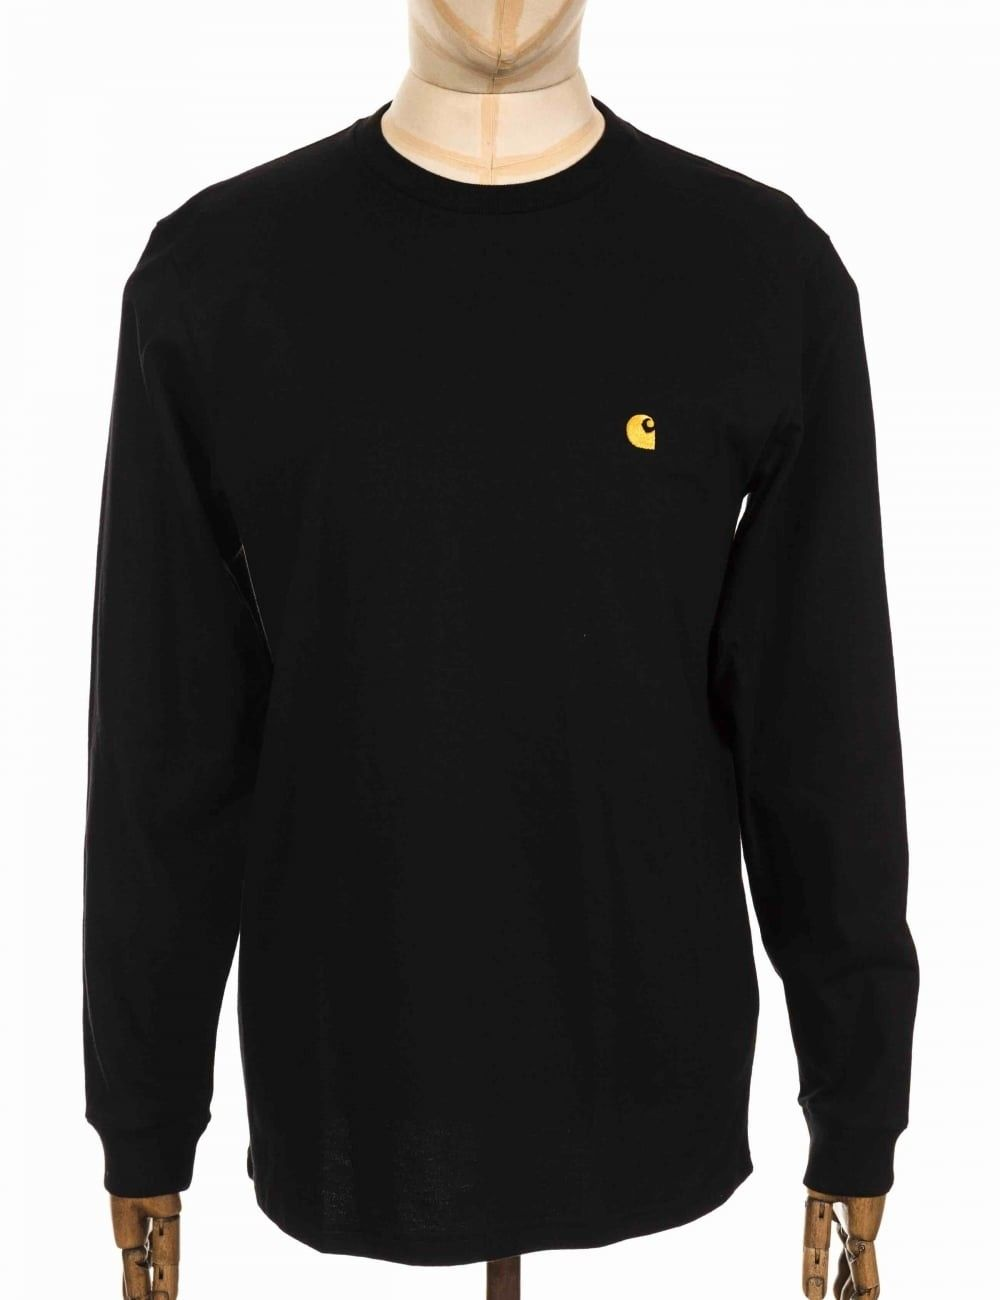 9894dfbc CARHARTT WIP L/S CHASE TEE - BLACK SIZE: X SMALL, COLOUR: BLACK/GOLD ...